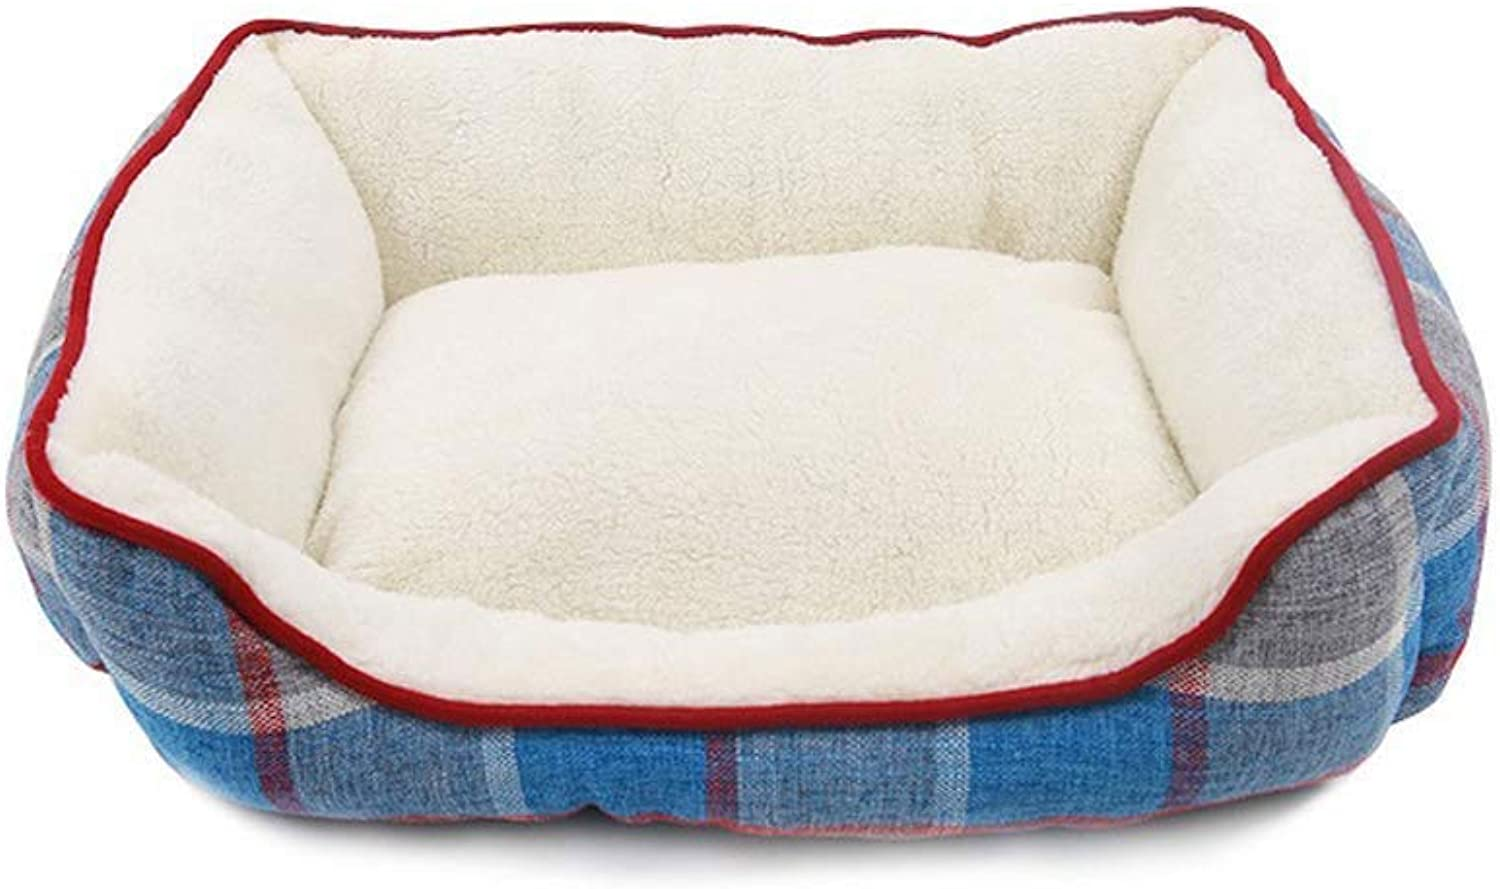 BHDYHM Pet Bed,Soft Pet Nest,Cat and Dog Cushion Bed,Dog Kennel,Dog Bed,Removable And Washable,Warm,Pet Supplies Four Seasons Universal Suitable For Pets (Size   L)